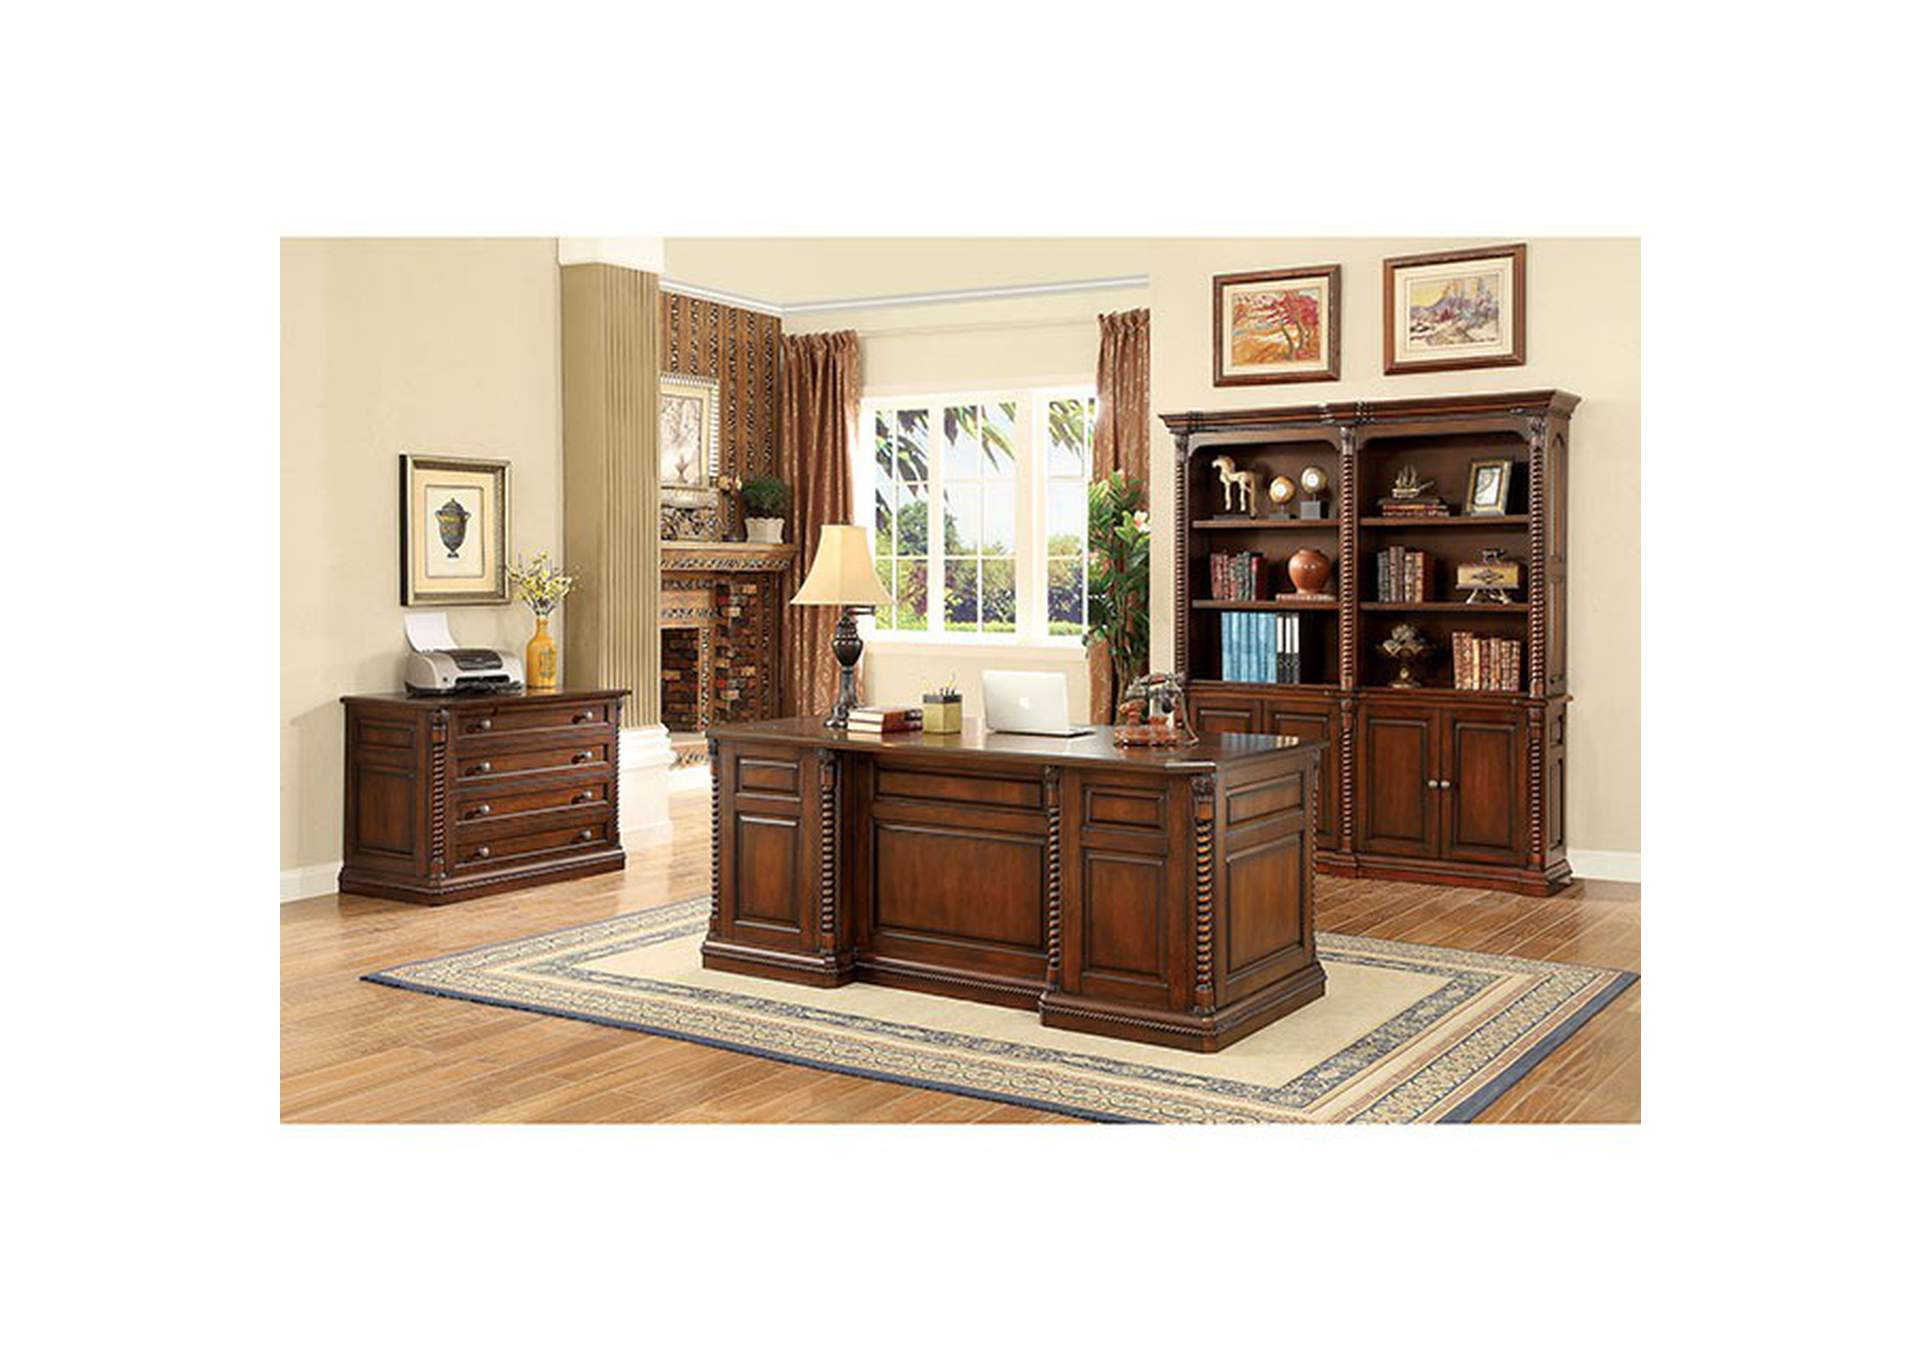 Vicki Dark Oak Book Shelf Buffet w/Hutch,Furniture of America